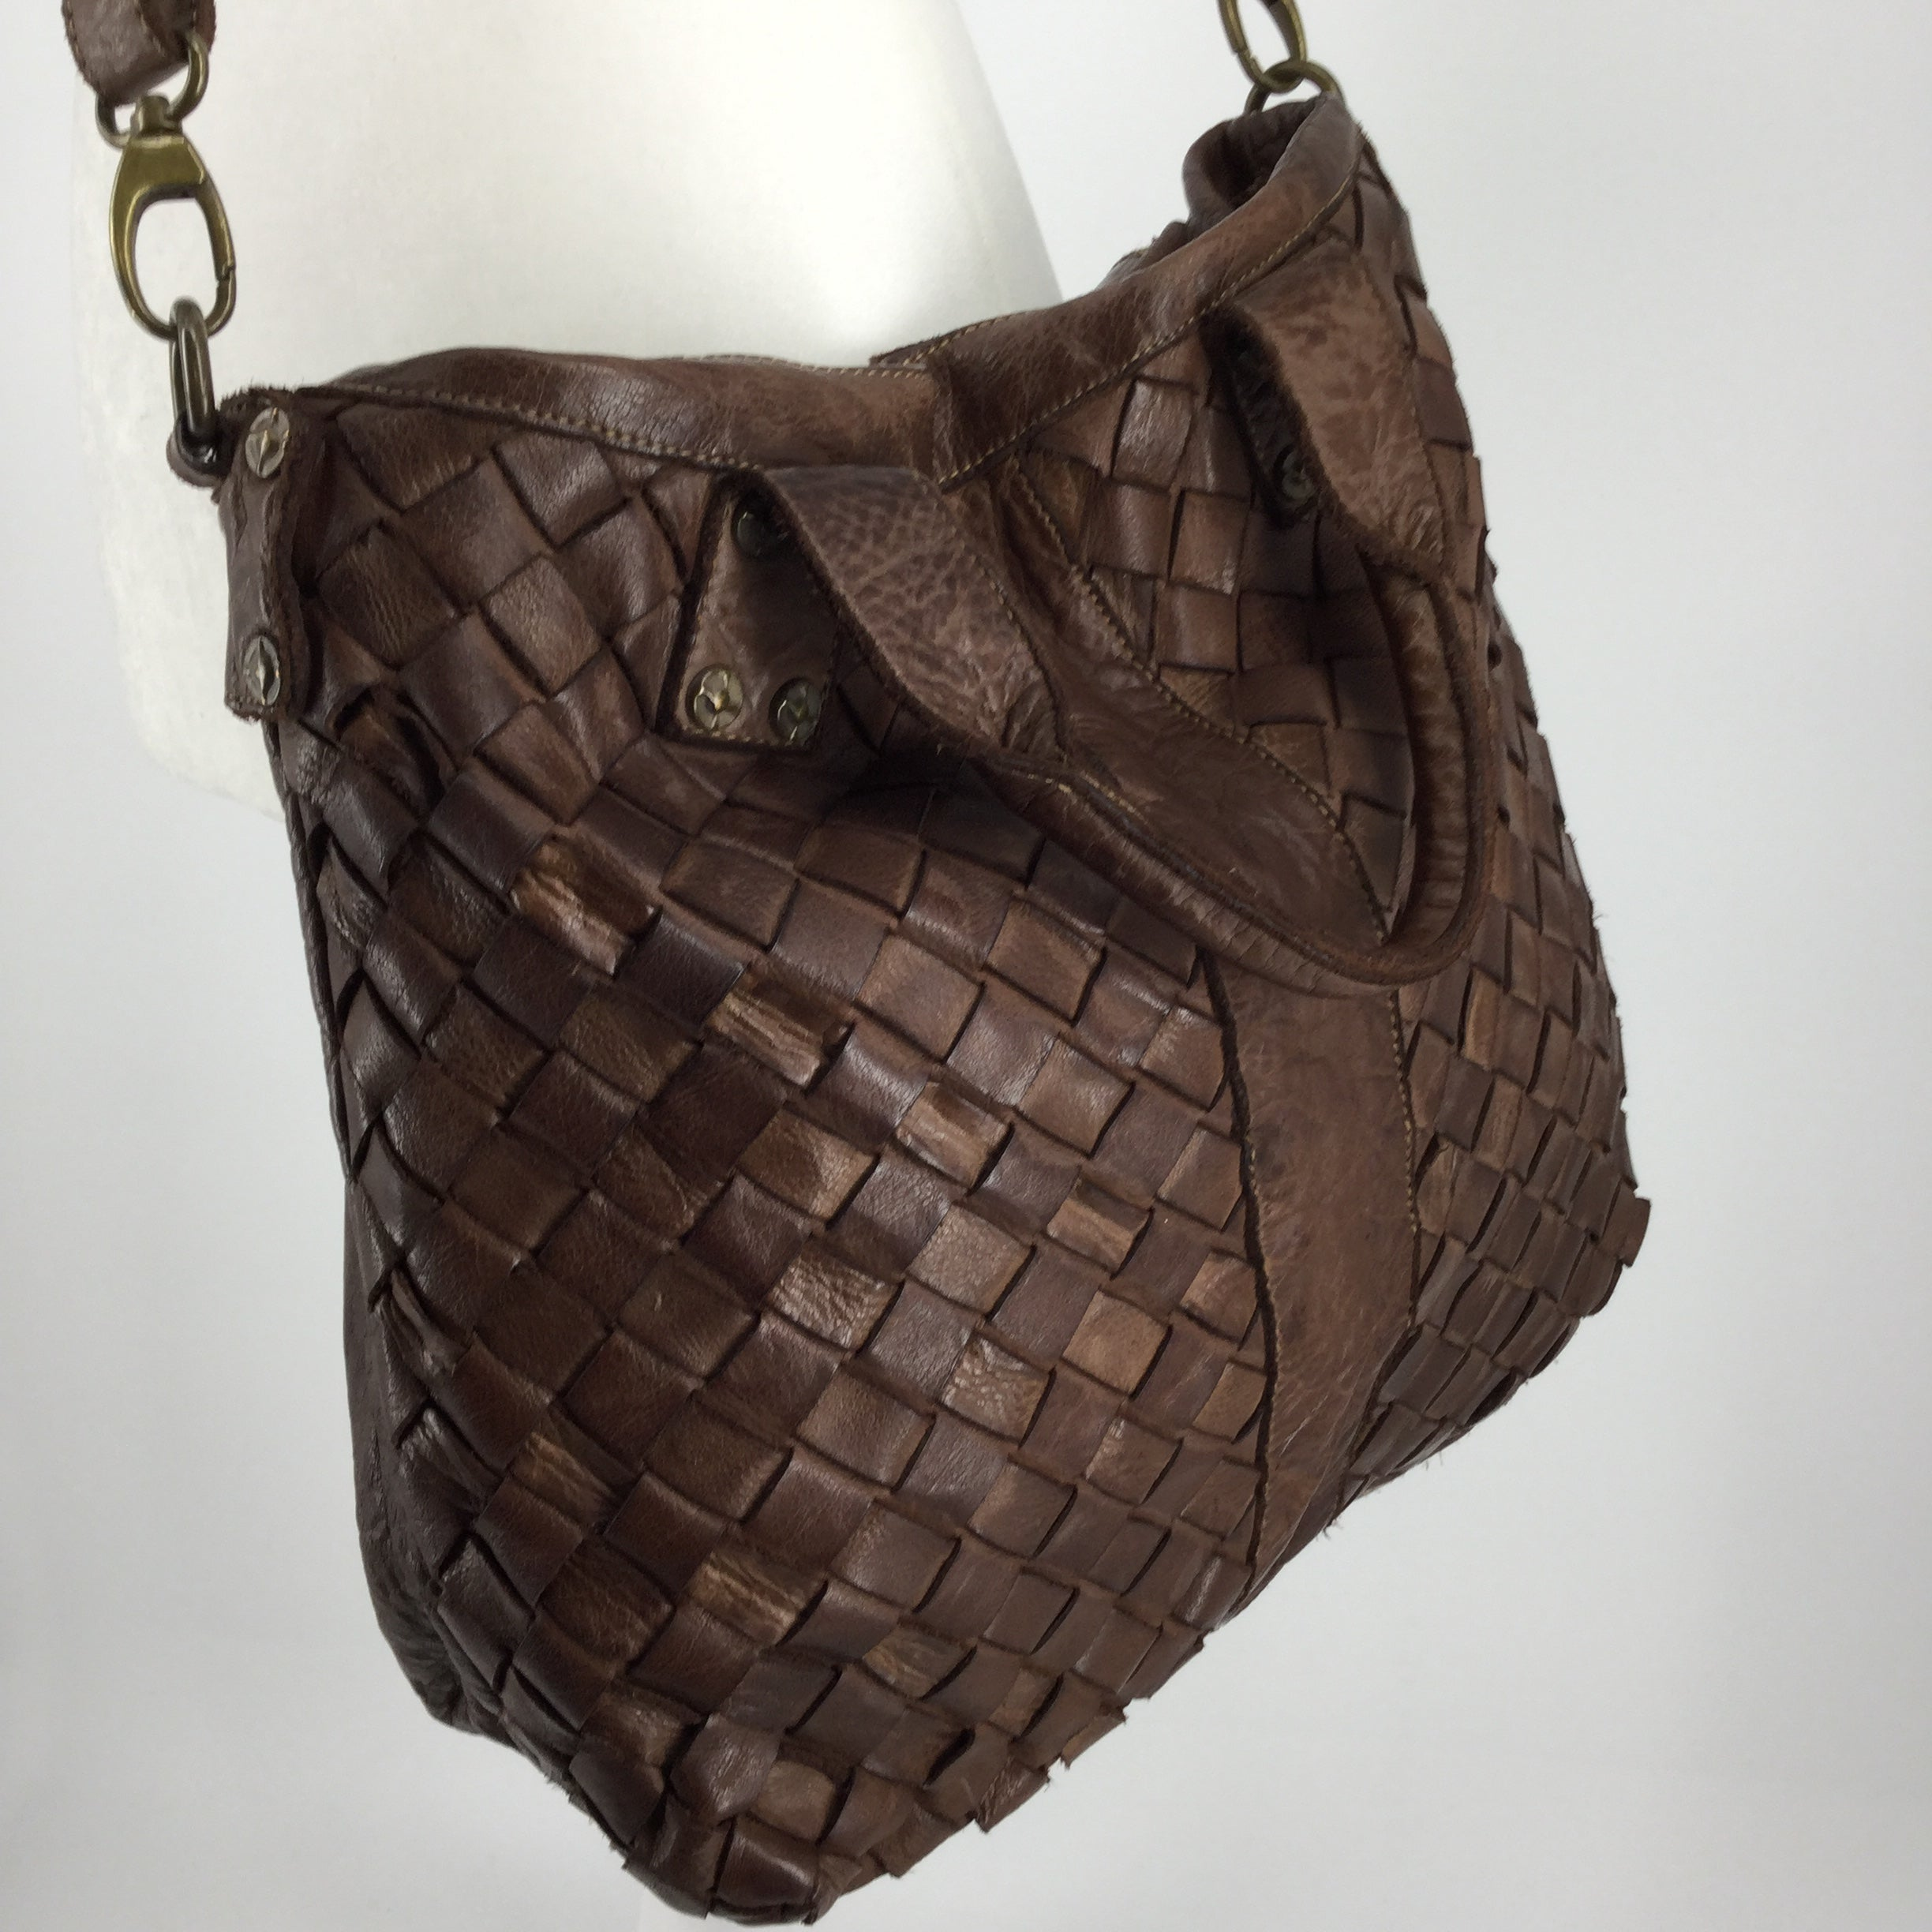 ACCESSORIES,PURSES AND HANDBAGS - THIS GEORGEOUS WOVEN LEATHER HANDBAG IS MADE IN ITALY WITH WONDERFUL CRAFTSMANSHIP. THE PEBBLED LEATHER IS SOFT AND SUPPLE, IN A RICH, WARM BROWN. THIS BAG HAS BOTH SHORT, CORDED HANDLES FOR ARM CARRY PLUS AN ADJUSTABLE CROSSBODY STRAP. IT IS VERY ROOMY INSIDE AND FEATURES 2 SMALLER SLIP POCKETS PLUS A LARGER ZIP POCKET. IT ZIPS ACROSS THE TOP TO SECURE YOUR BELONGINGS. MAKE THIS UNIQUE BAG YOURS TODAY!